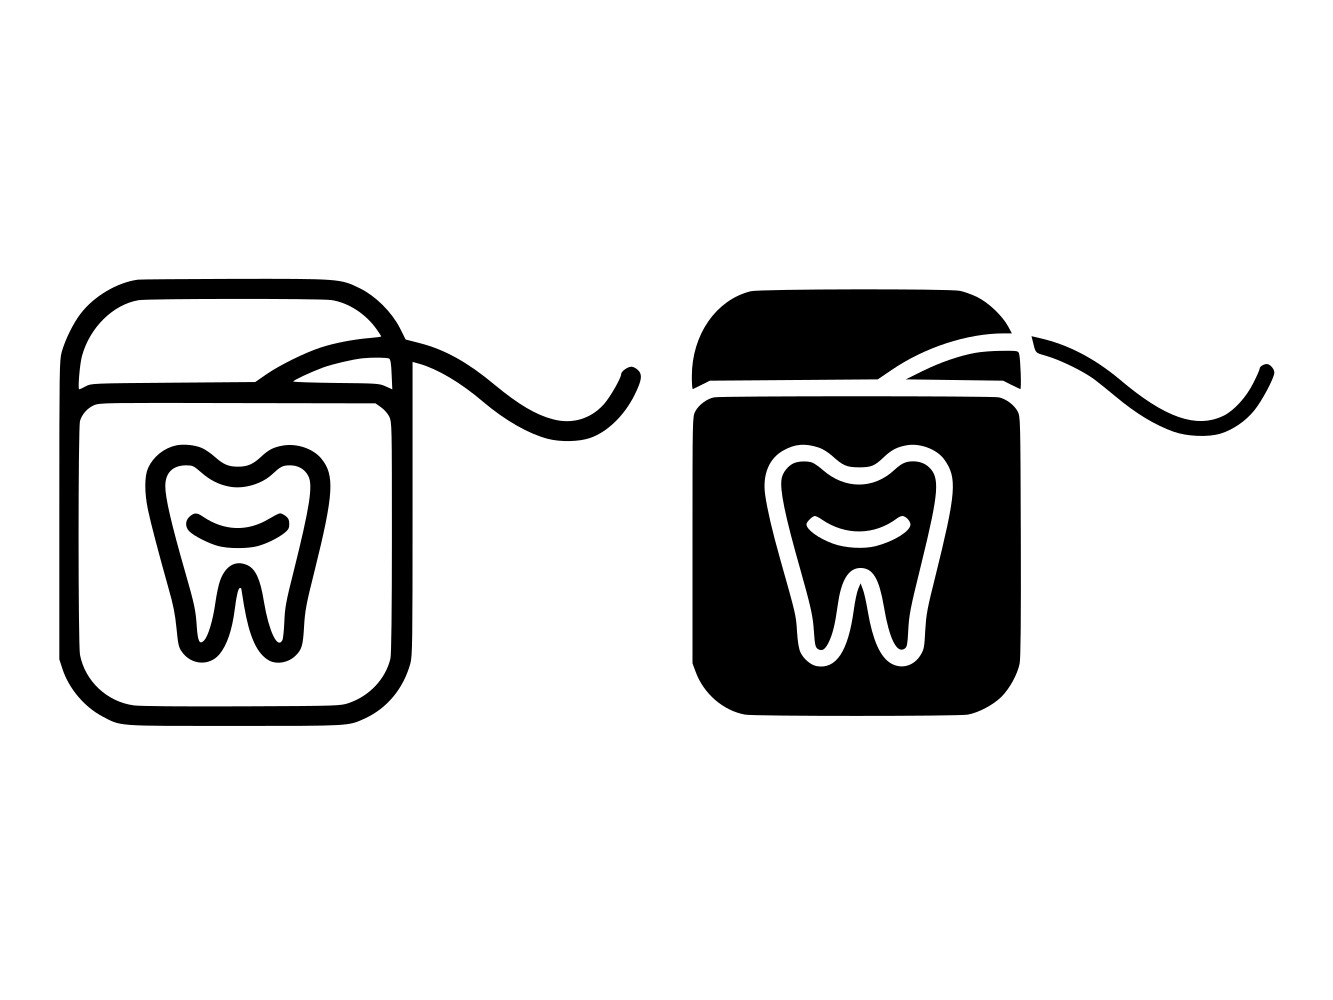 Download Free Dental Floss Line And Glyph Icon Graphic By Anrasoft Creative for Cricut Explore, Silhouette and other cutting machines.